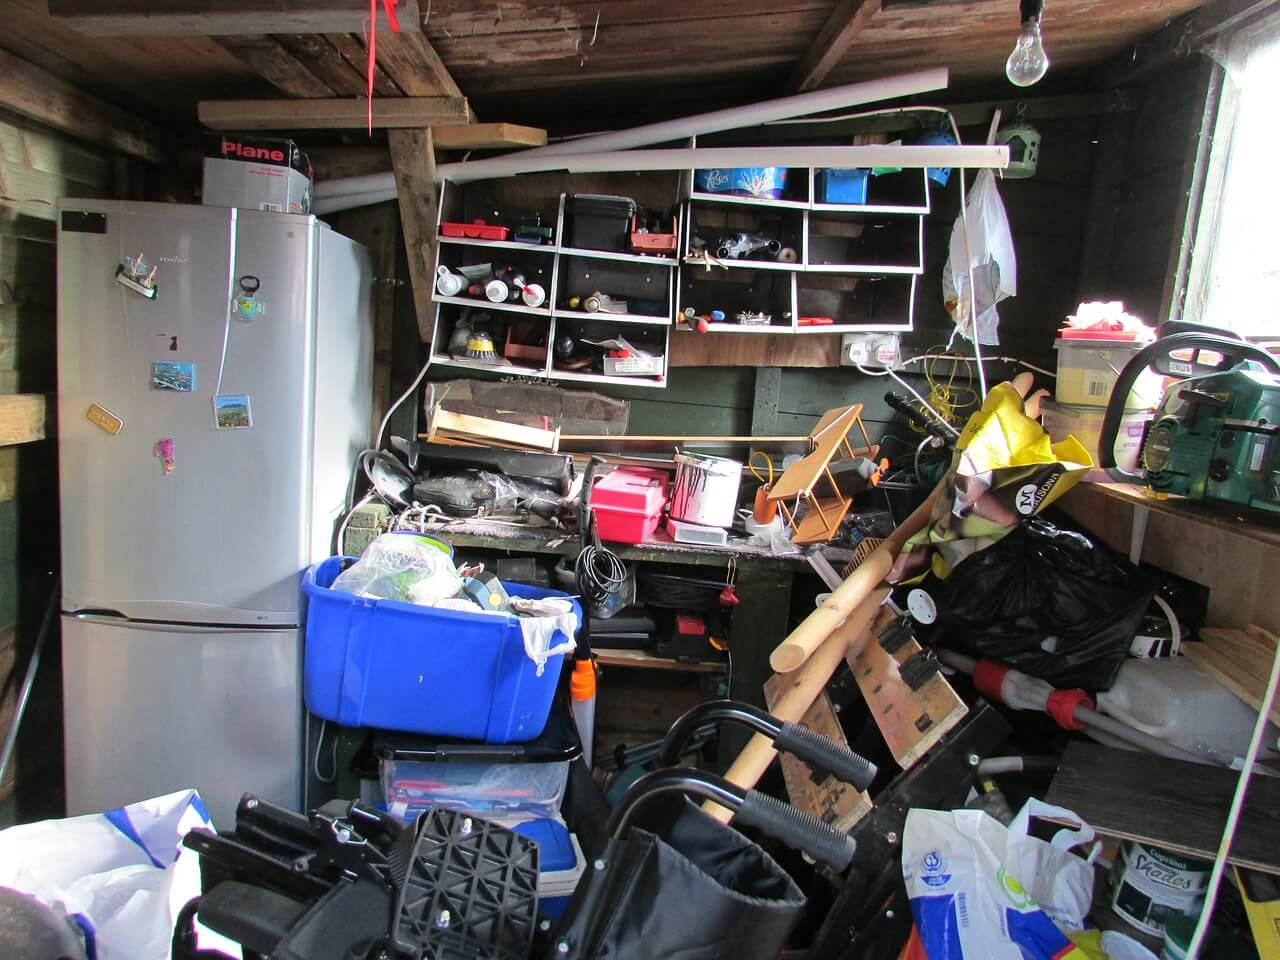 Belongings piled up in a shed